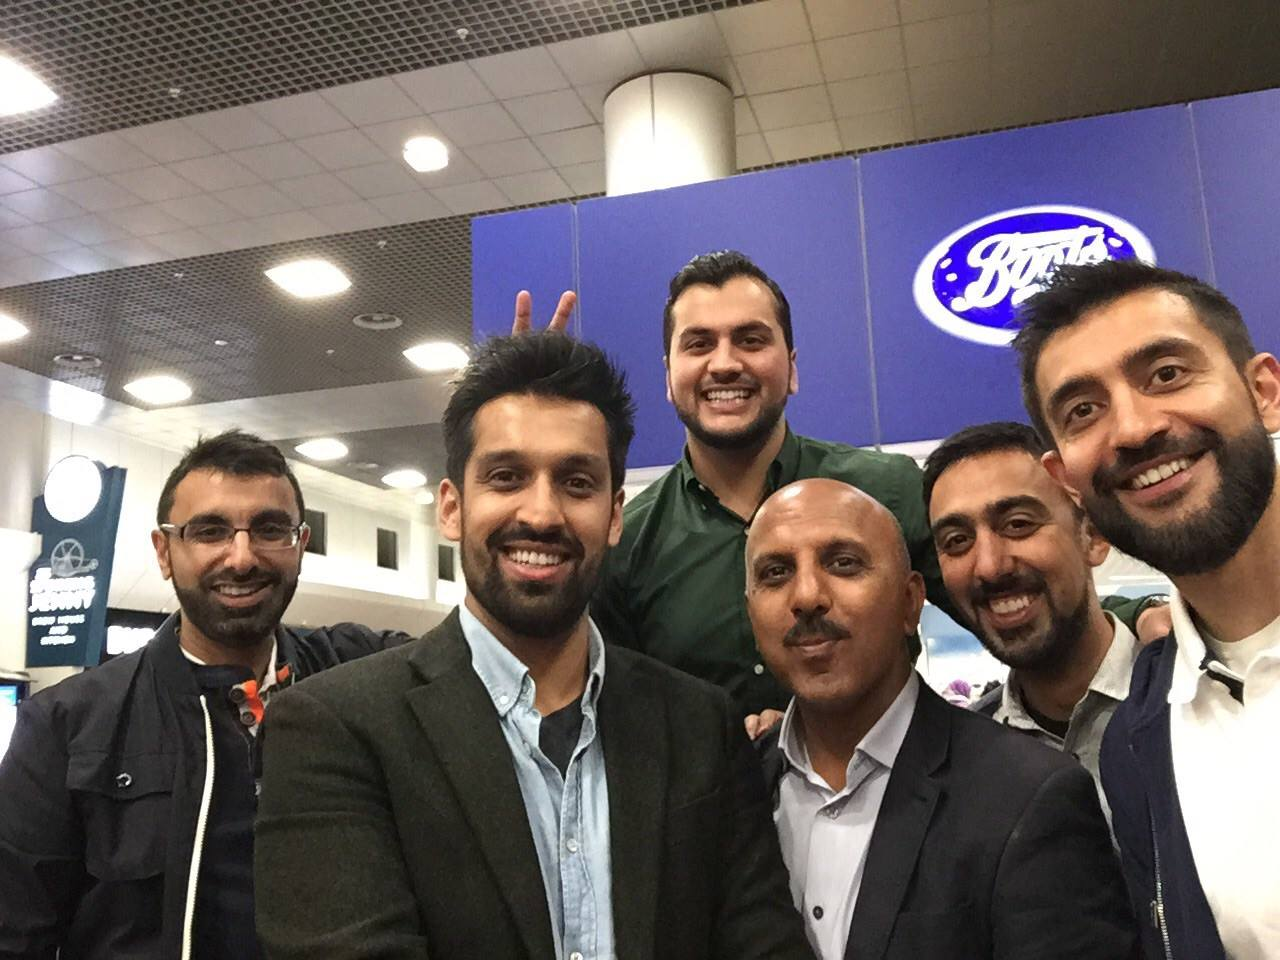 DAN Kashmir team in manchester airport